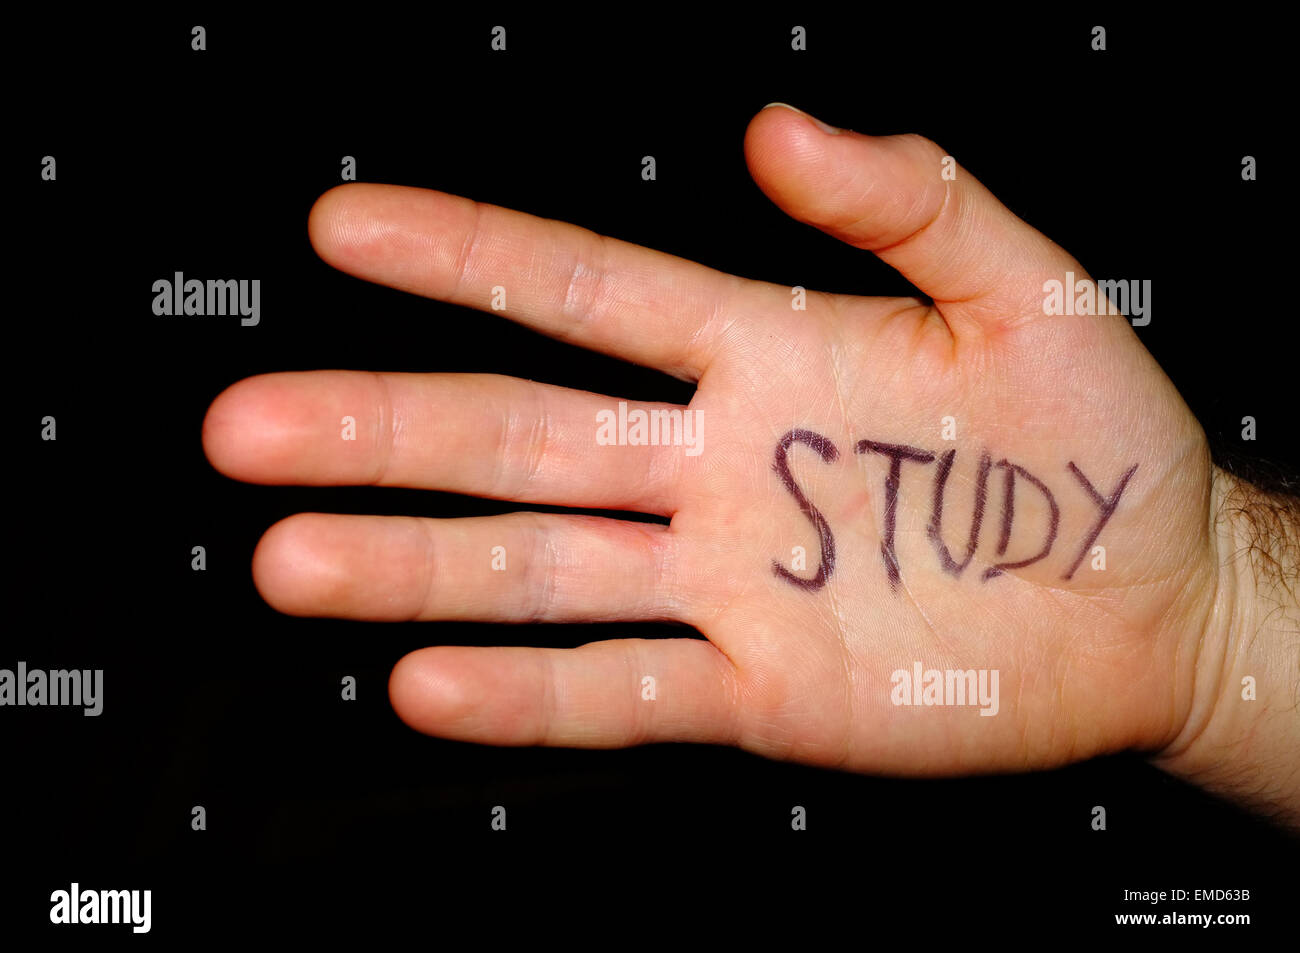 Study written on a white man's hand photographed against a black background. - Stock Image